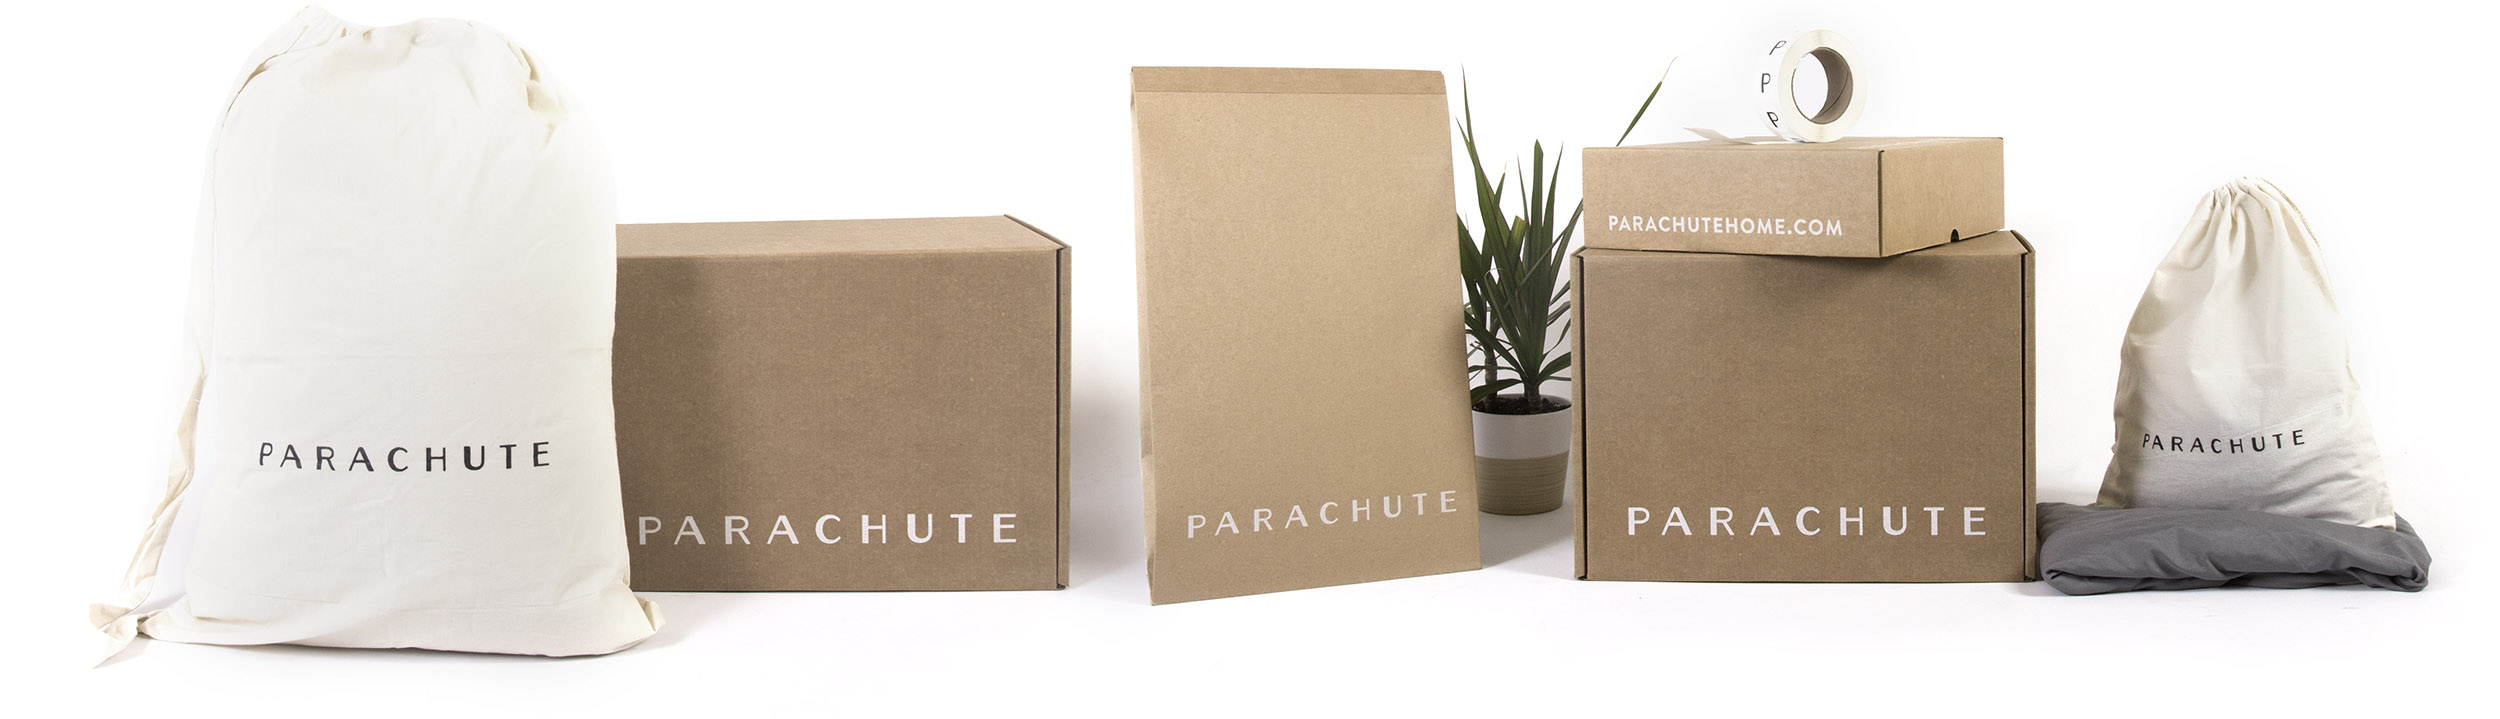 Parachute Packaging Lineup by Lumi